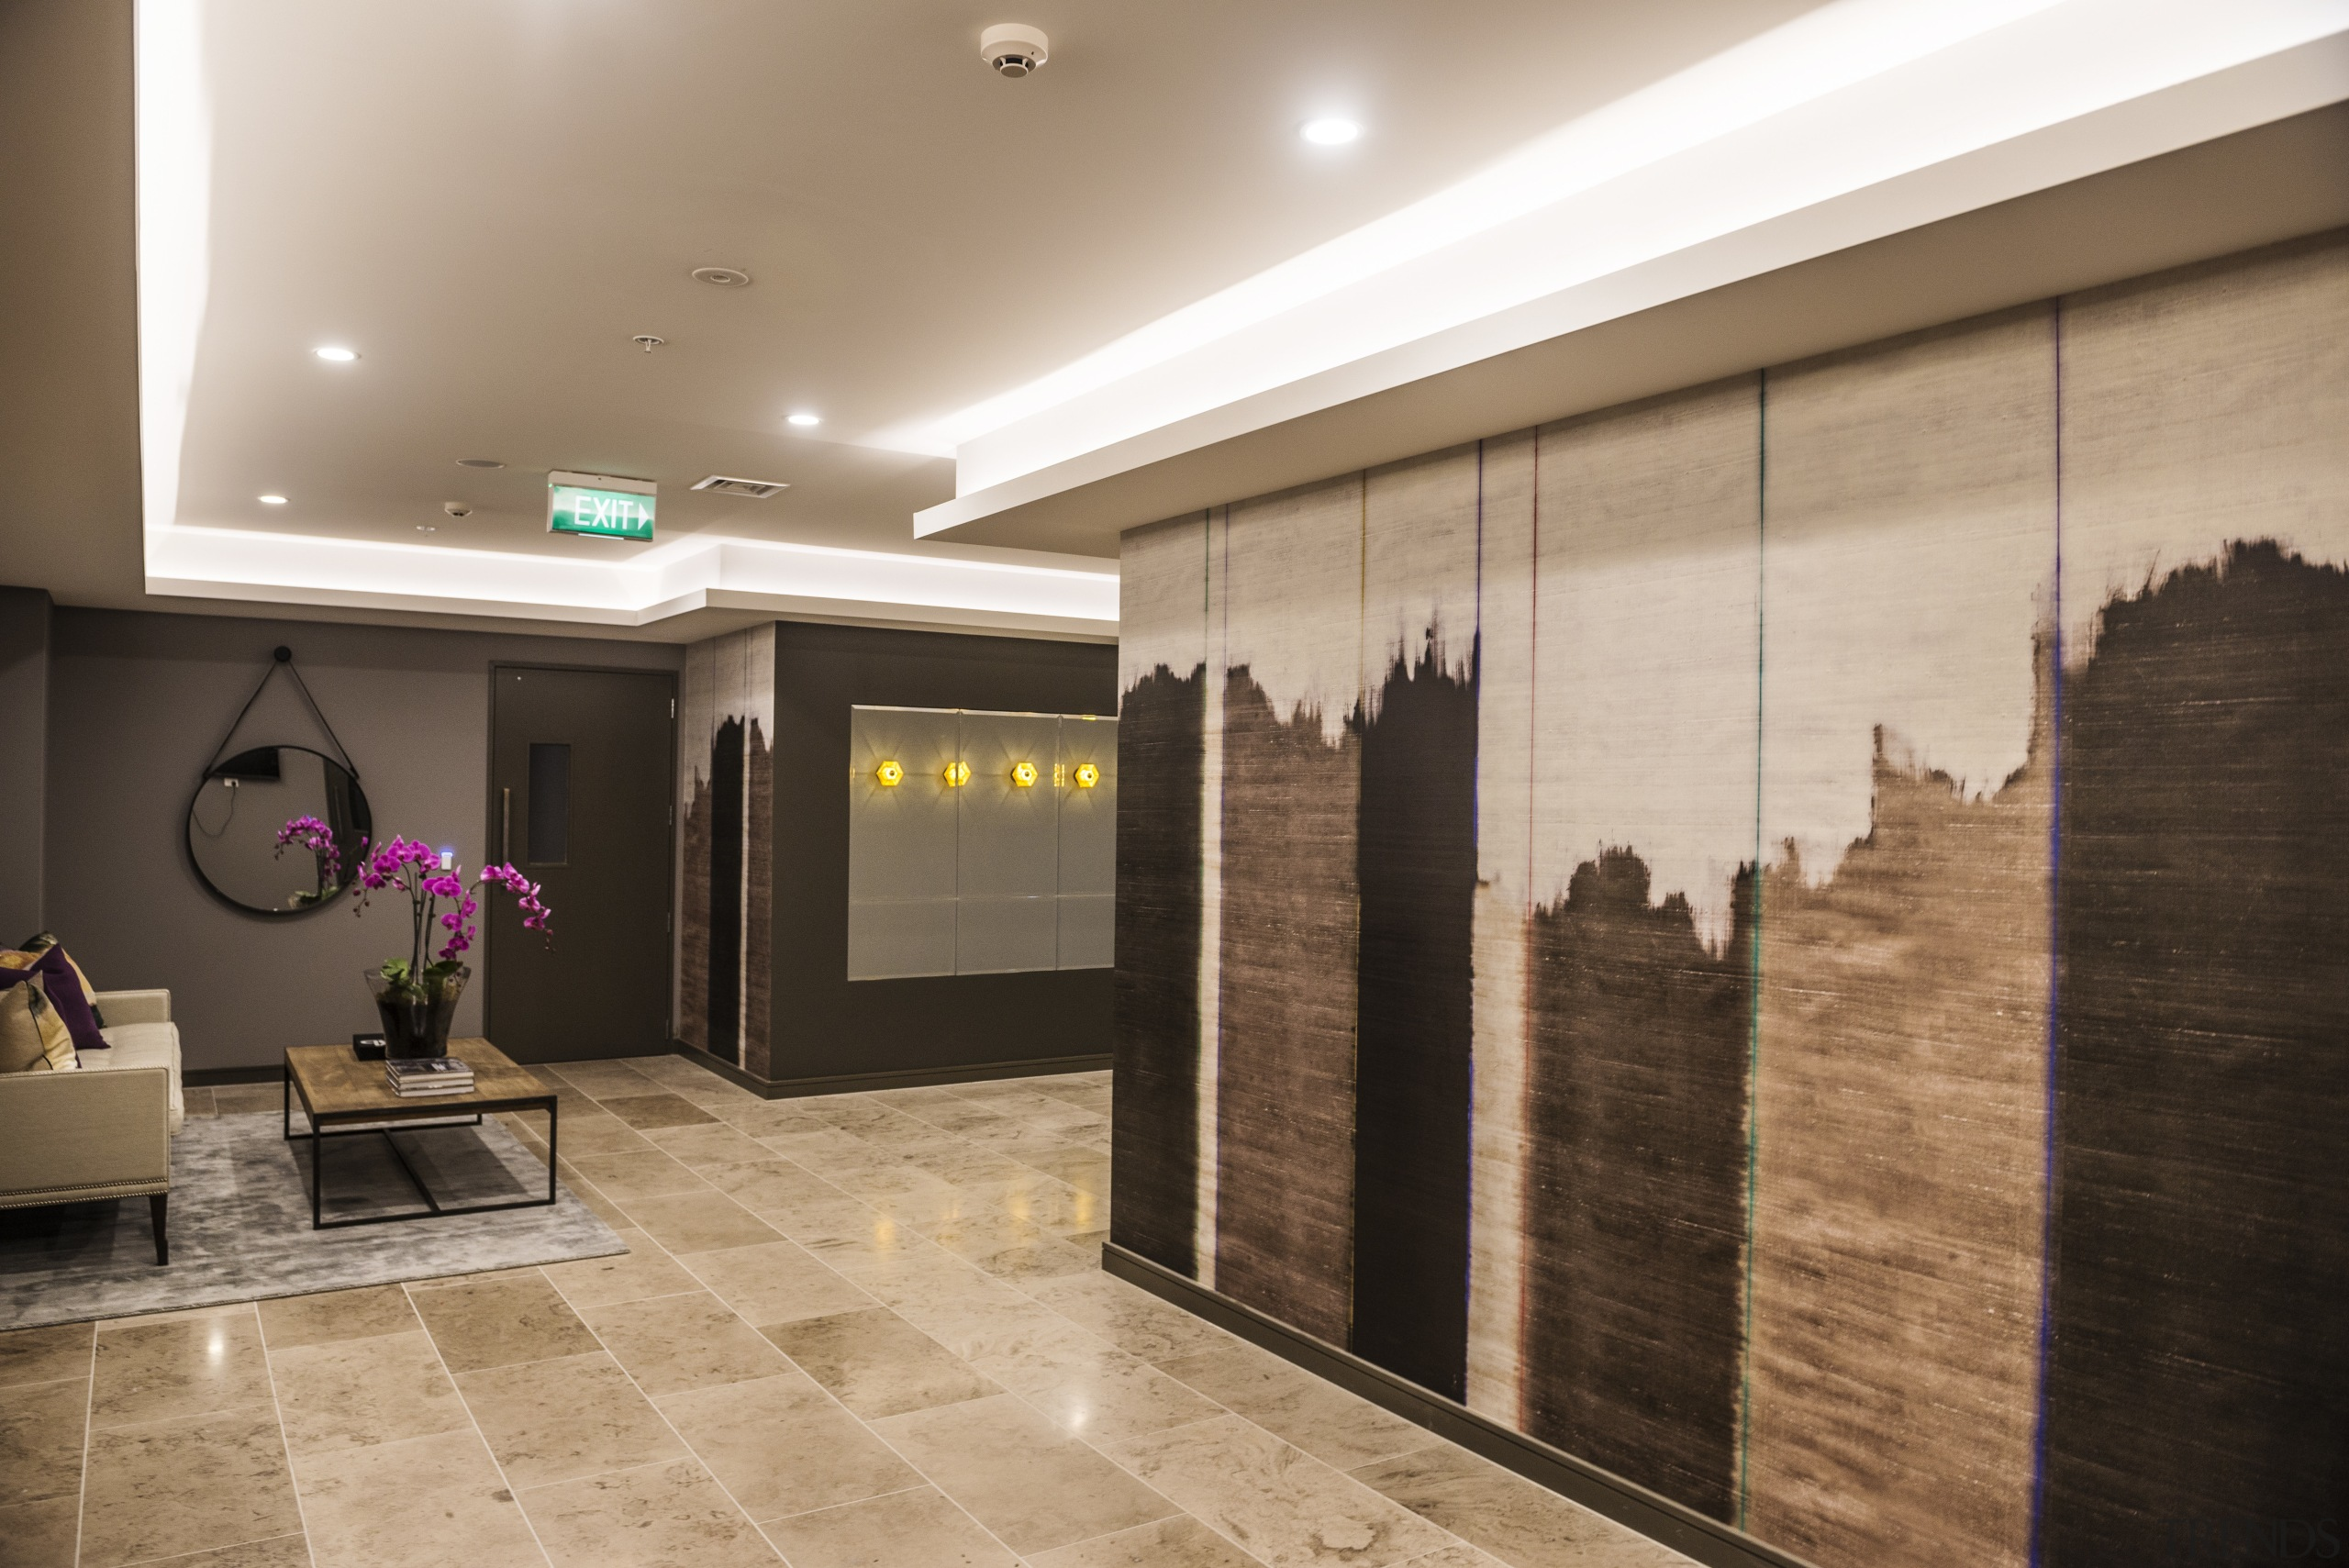 A distressed-look designer wallpaper provides a contemporary feature ceiling, floor, flooring, interior design, lobby, wall, orange, brown